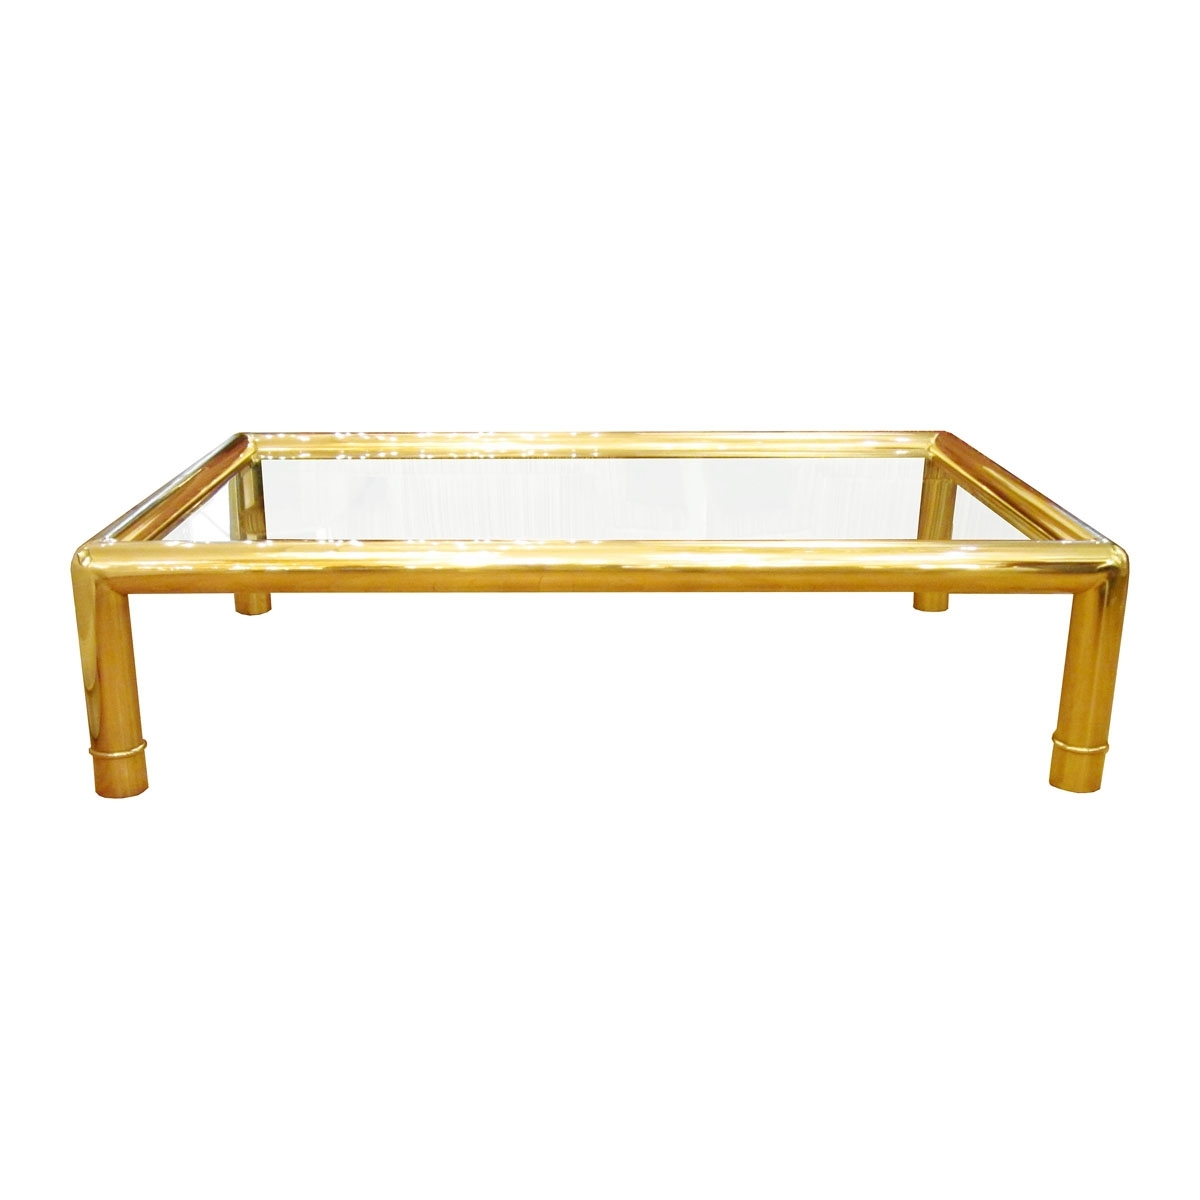 Rectangular Coffee Table With Tubular Brass Frame And Glass Top Within Best And Newest Rectangular Coffee Tables With Brass Legs (View 14 of 20)